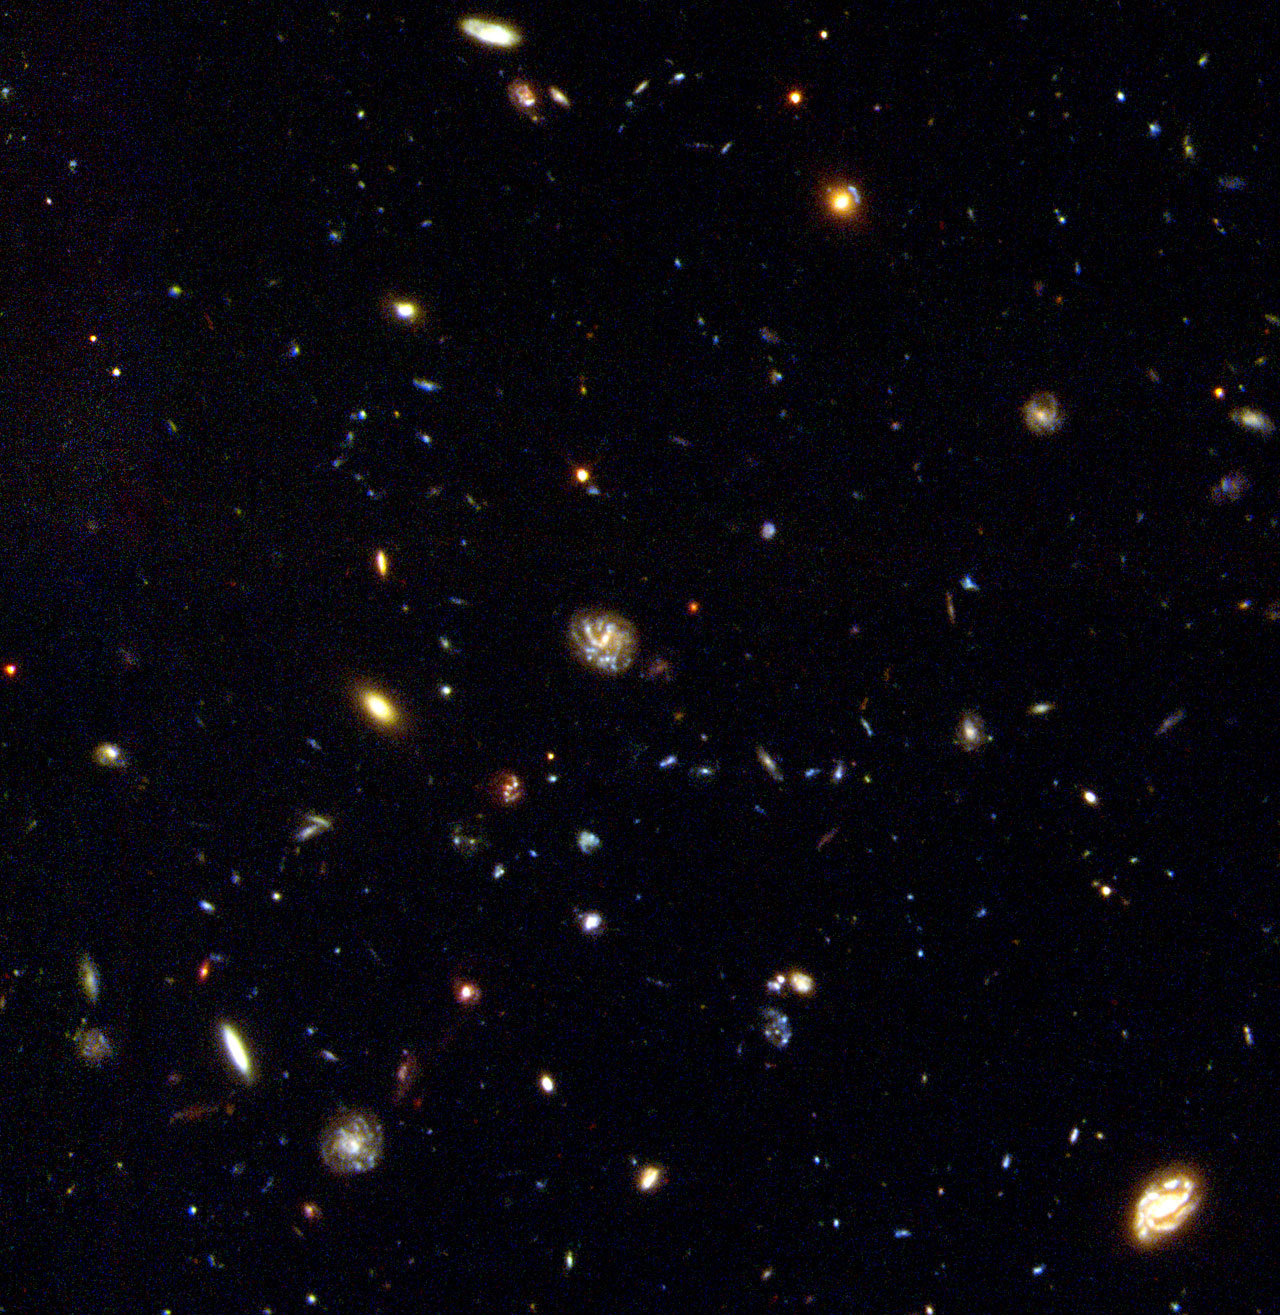 Hubble Deep Field South Unveils Myriad Galaxies | ESA/Hubble